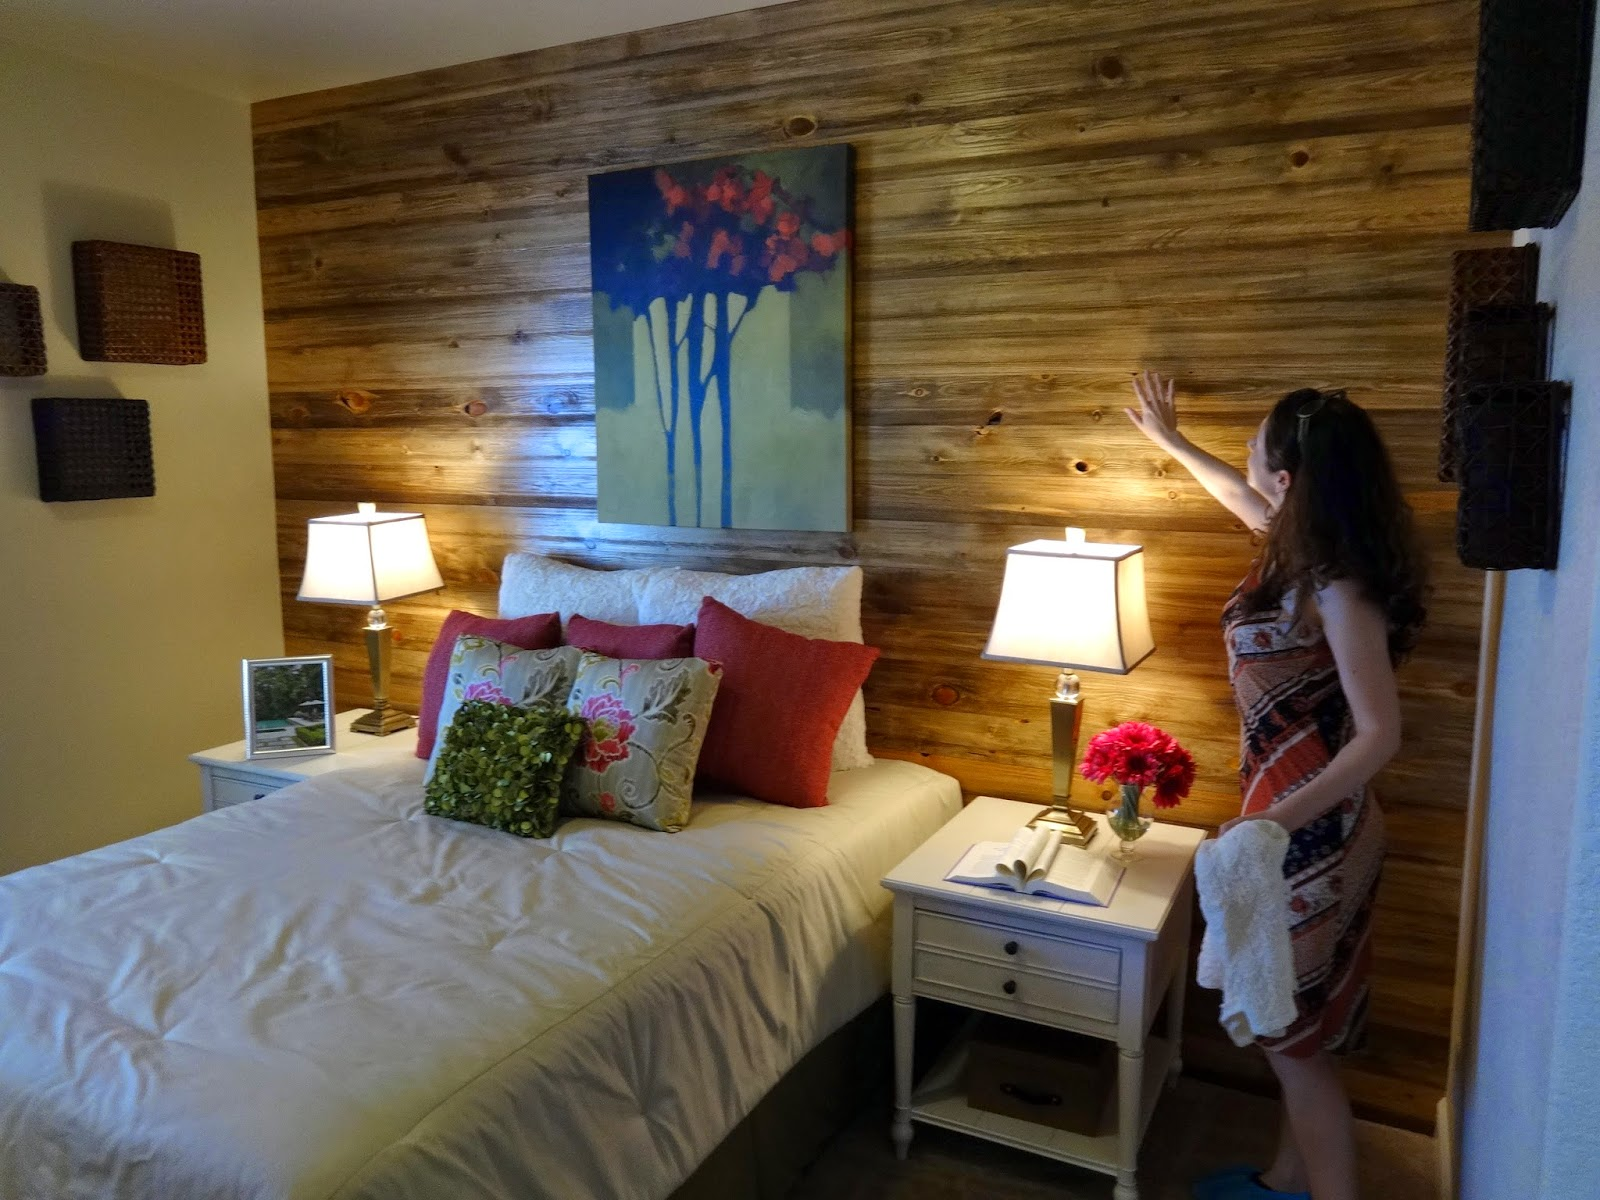 Nerd Bedroom Decorating Inspiration From The Parade Of Homes Kitty Deschanel A